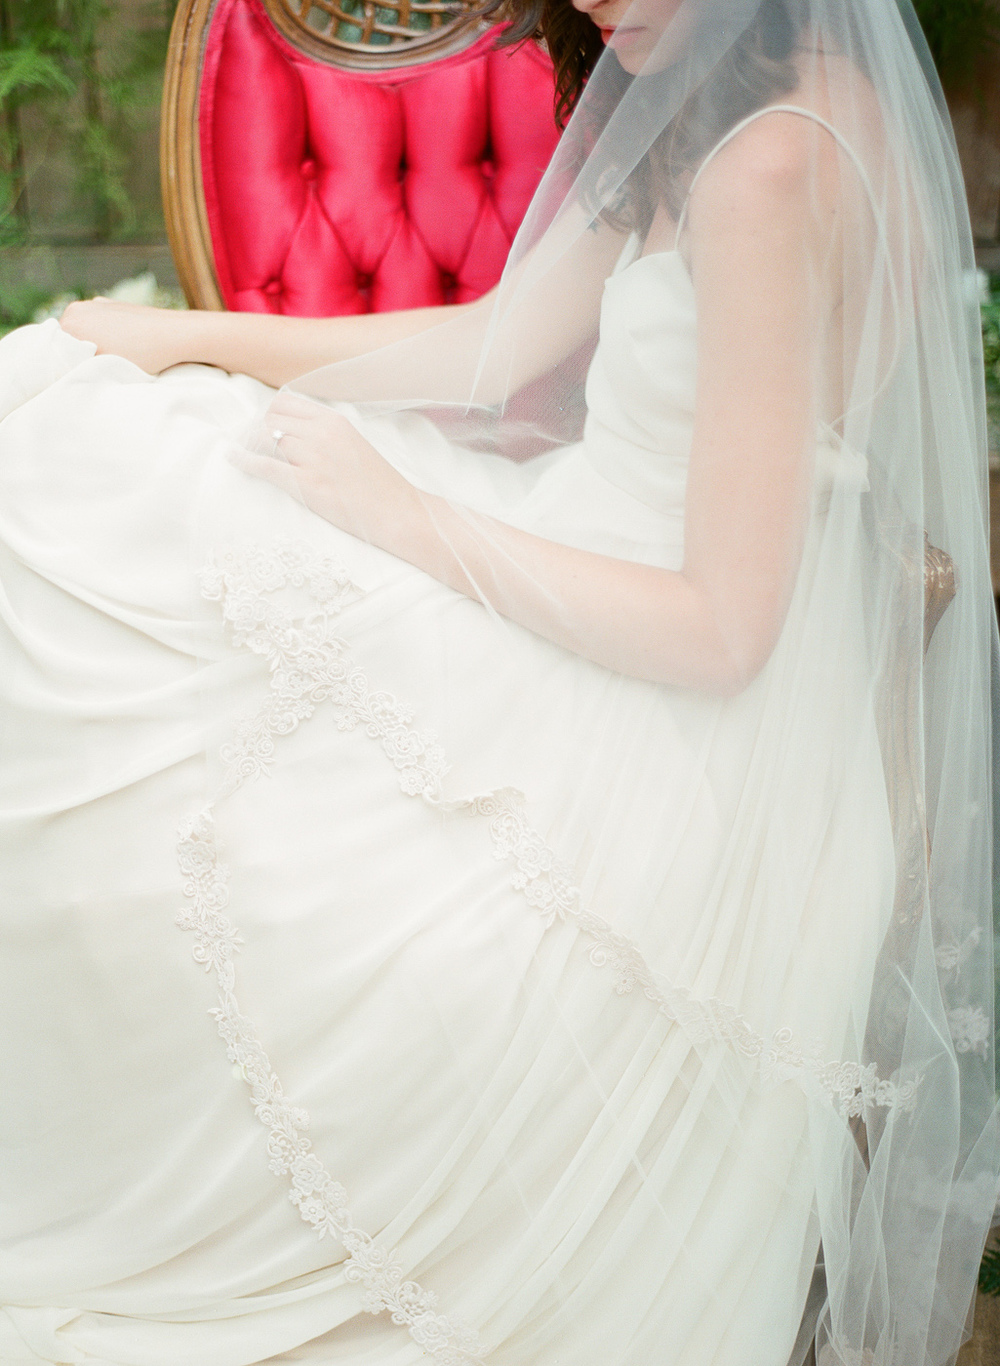 wedding drop veil with embroidery edge detail by hushed commotion